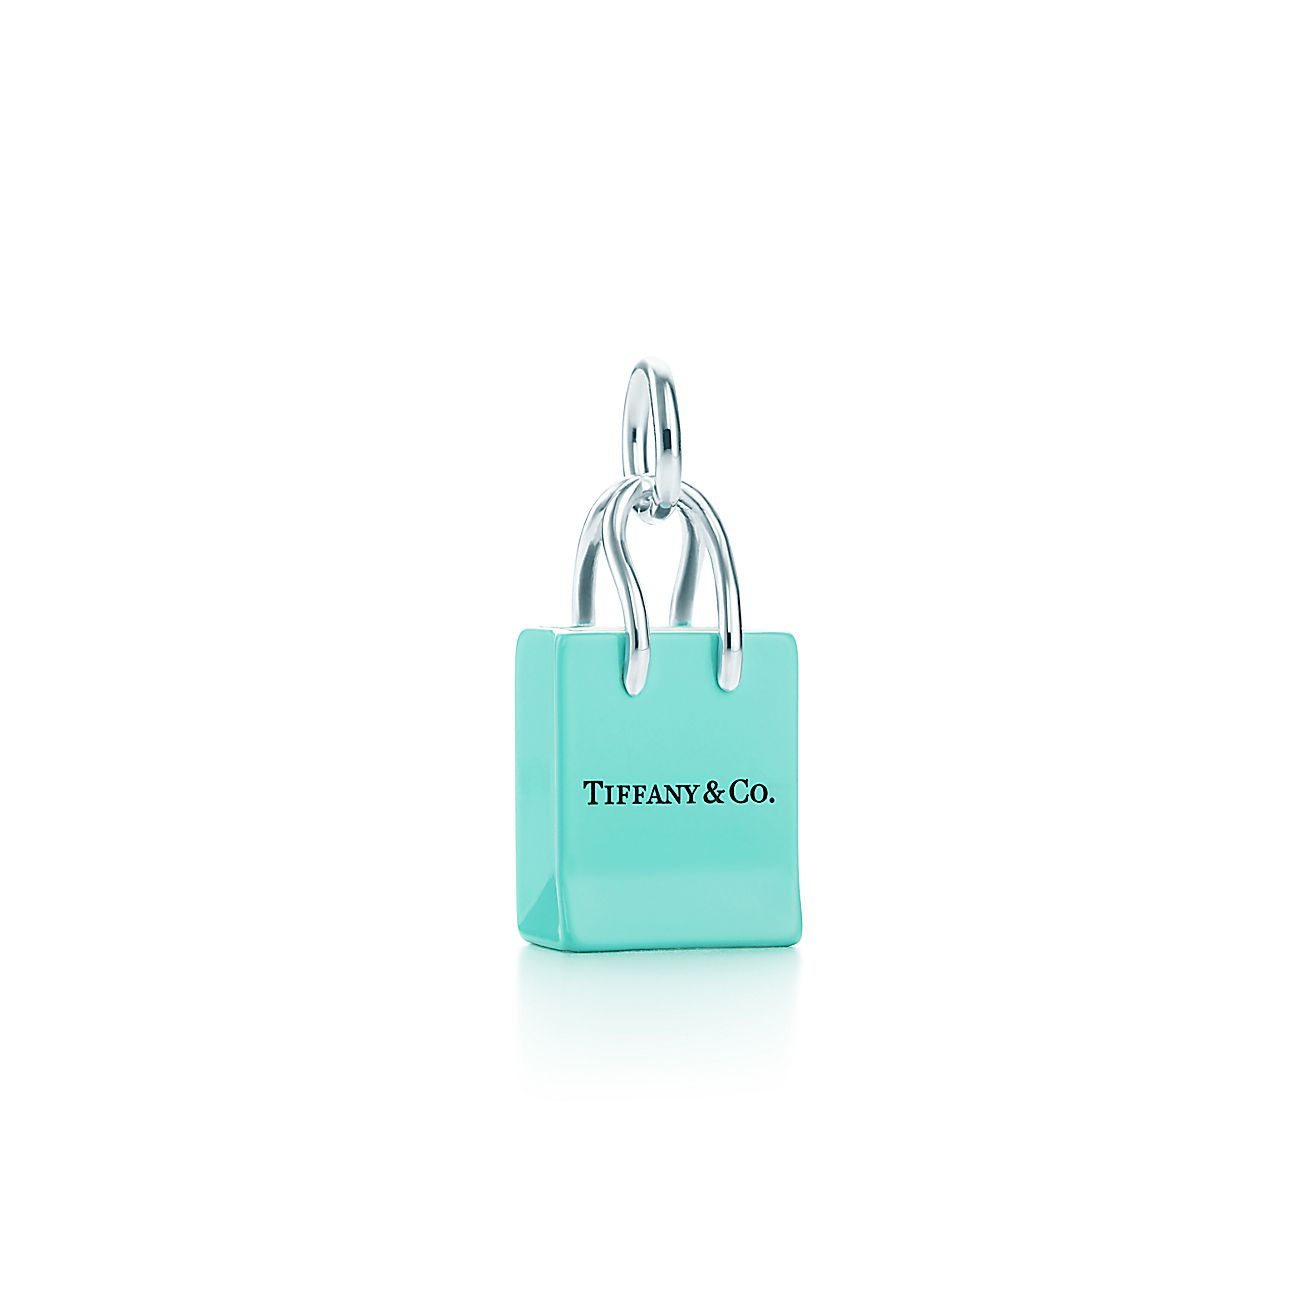 Tiffany & Co.®<br>Shopping Bag Charm